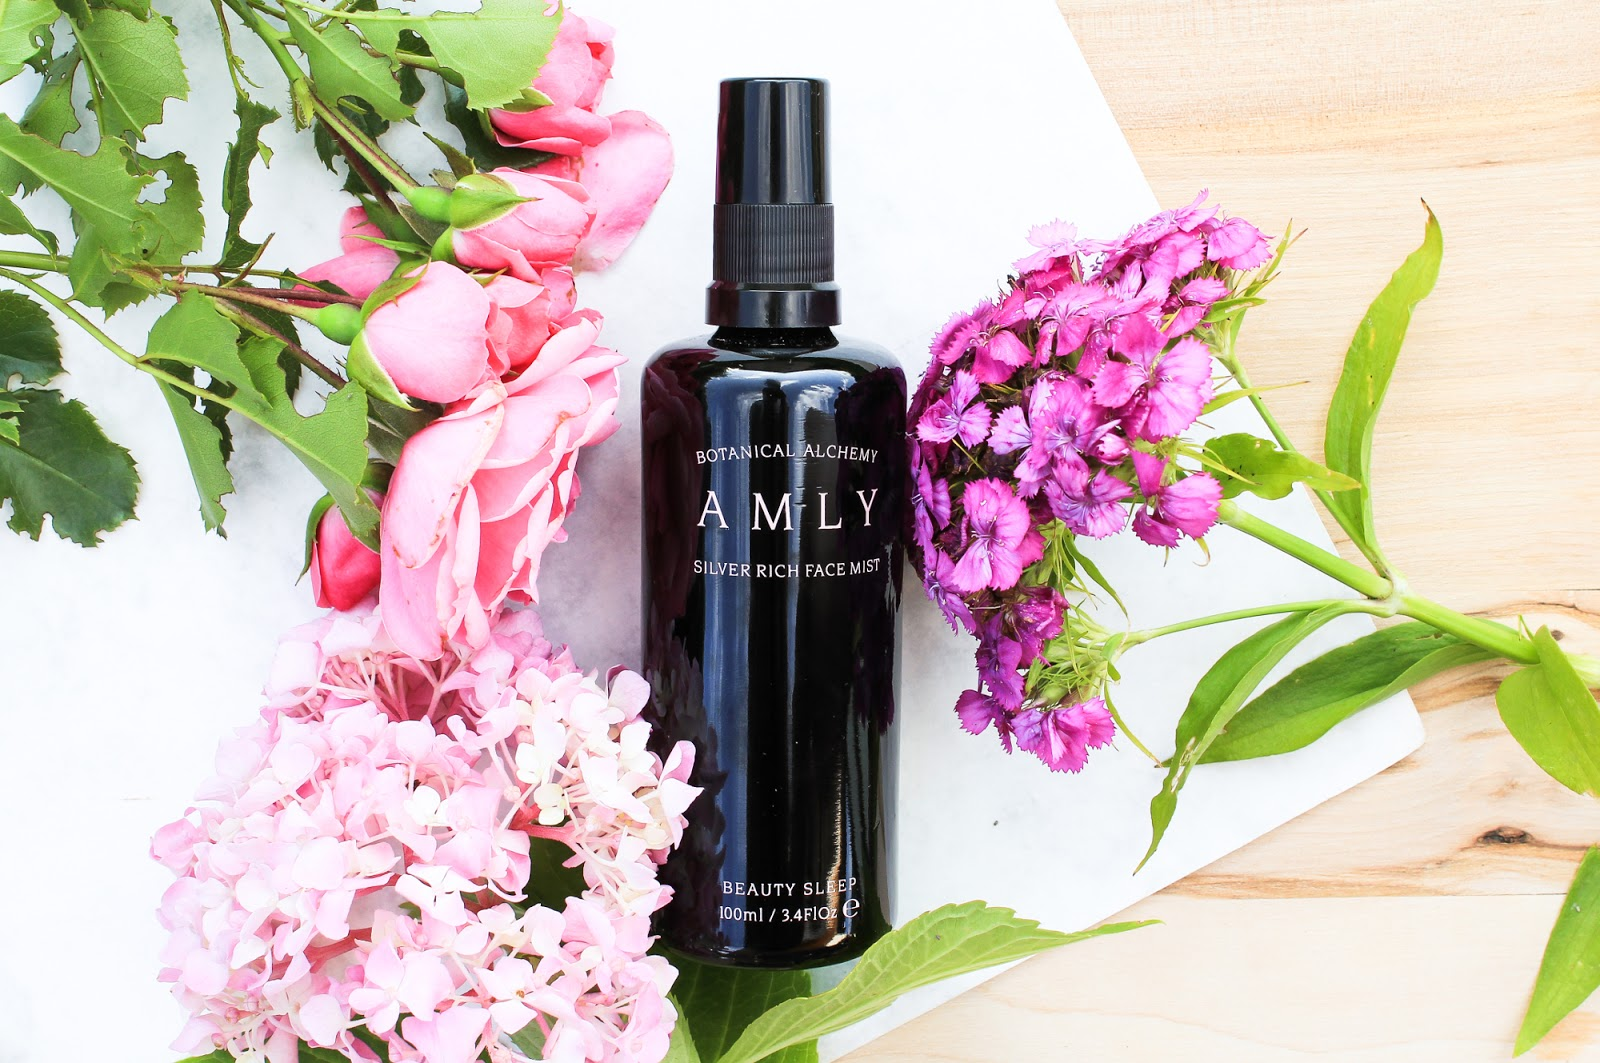 Amly Botanicals Beauty Sleep Silver Rich Face Mist, Boxwalla beauty box